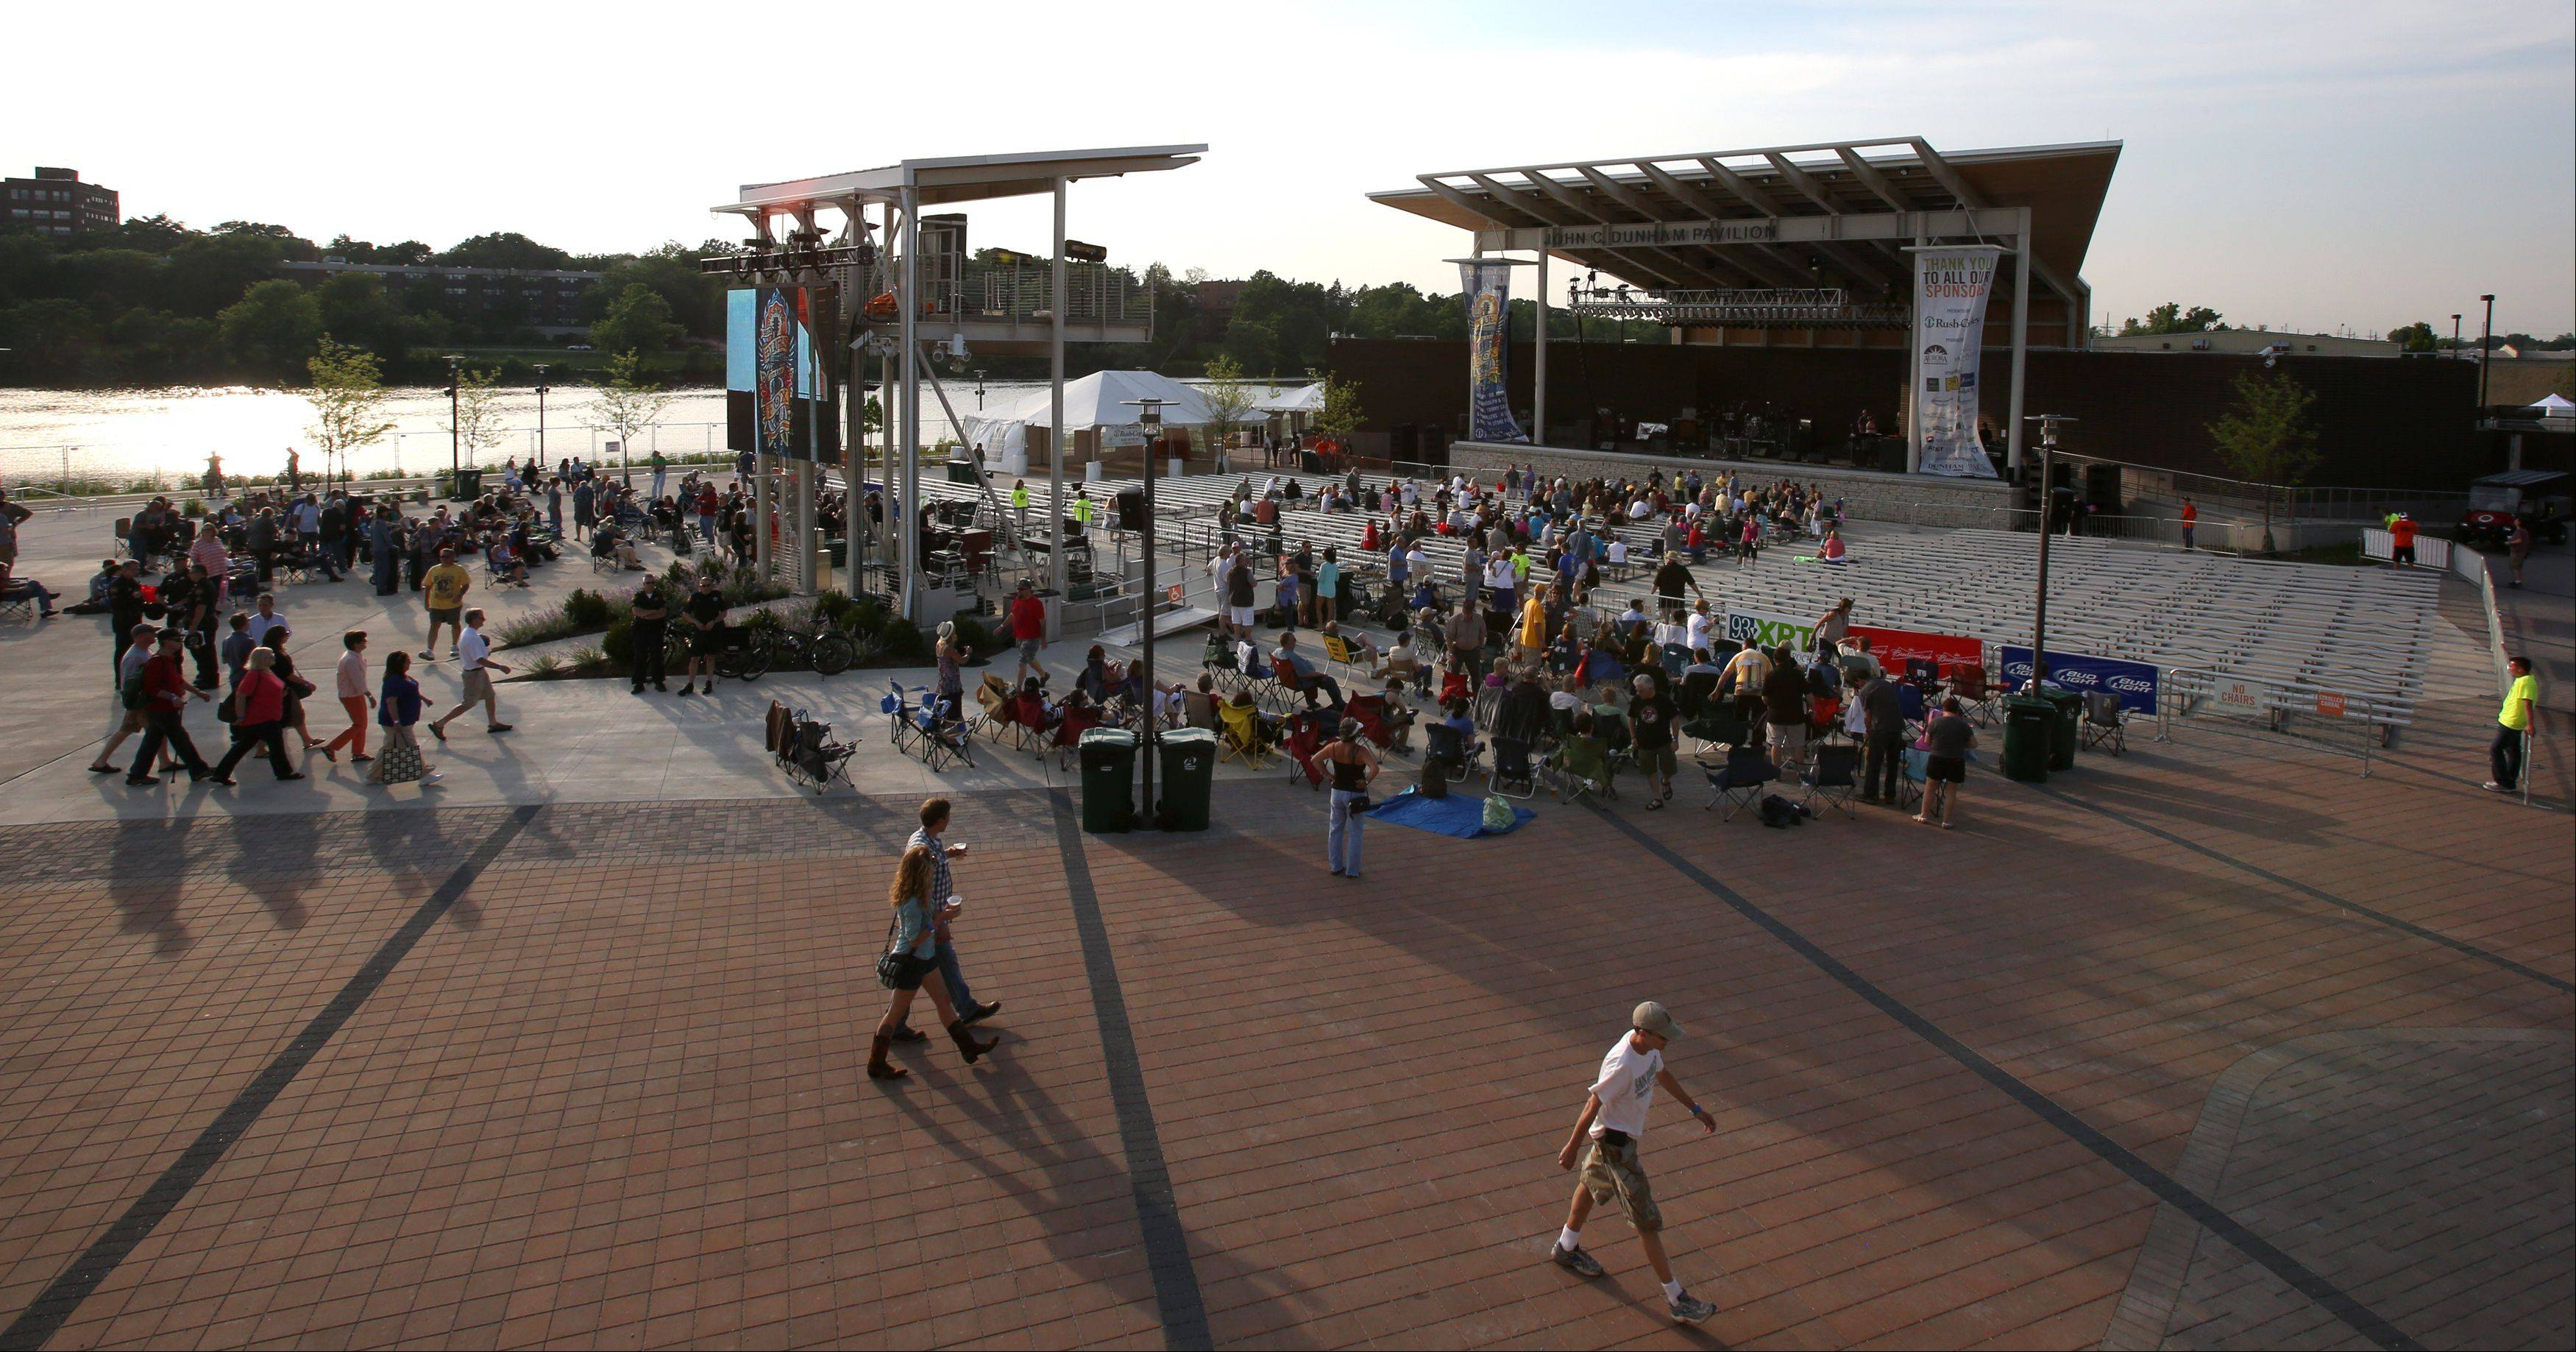 The Fox River is the backdrop for concerts at RiverEdge Park's Music Garden, which opened June 14 for the 17th annual Blues on the Fox festival.